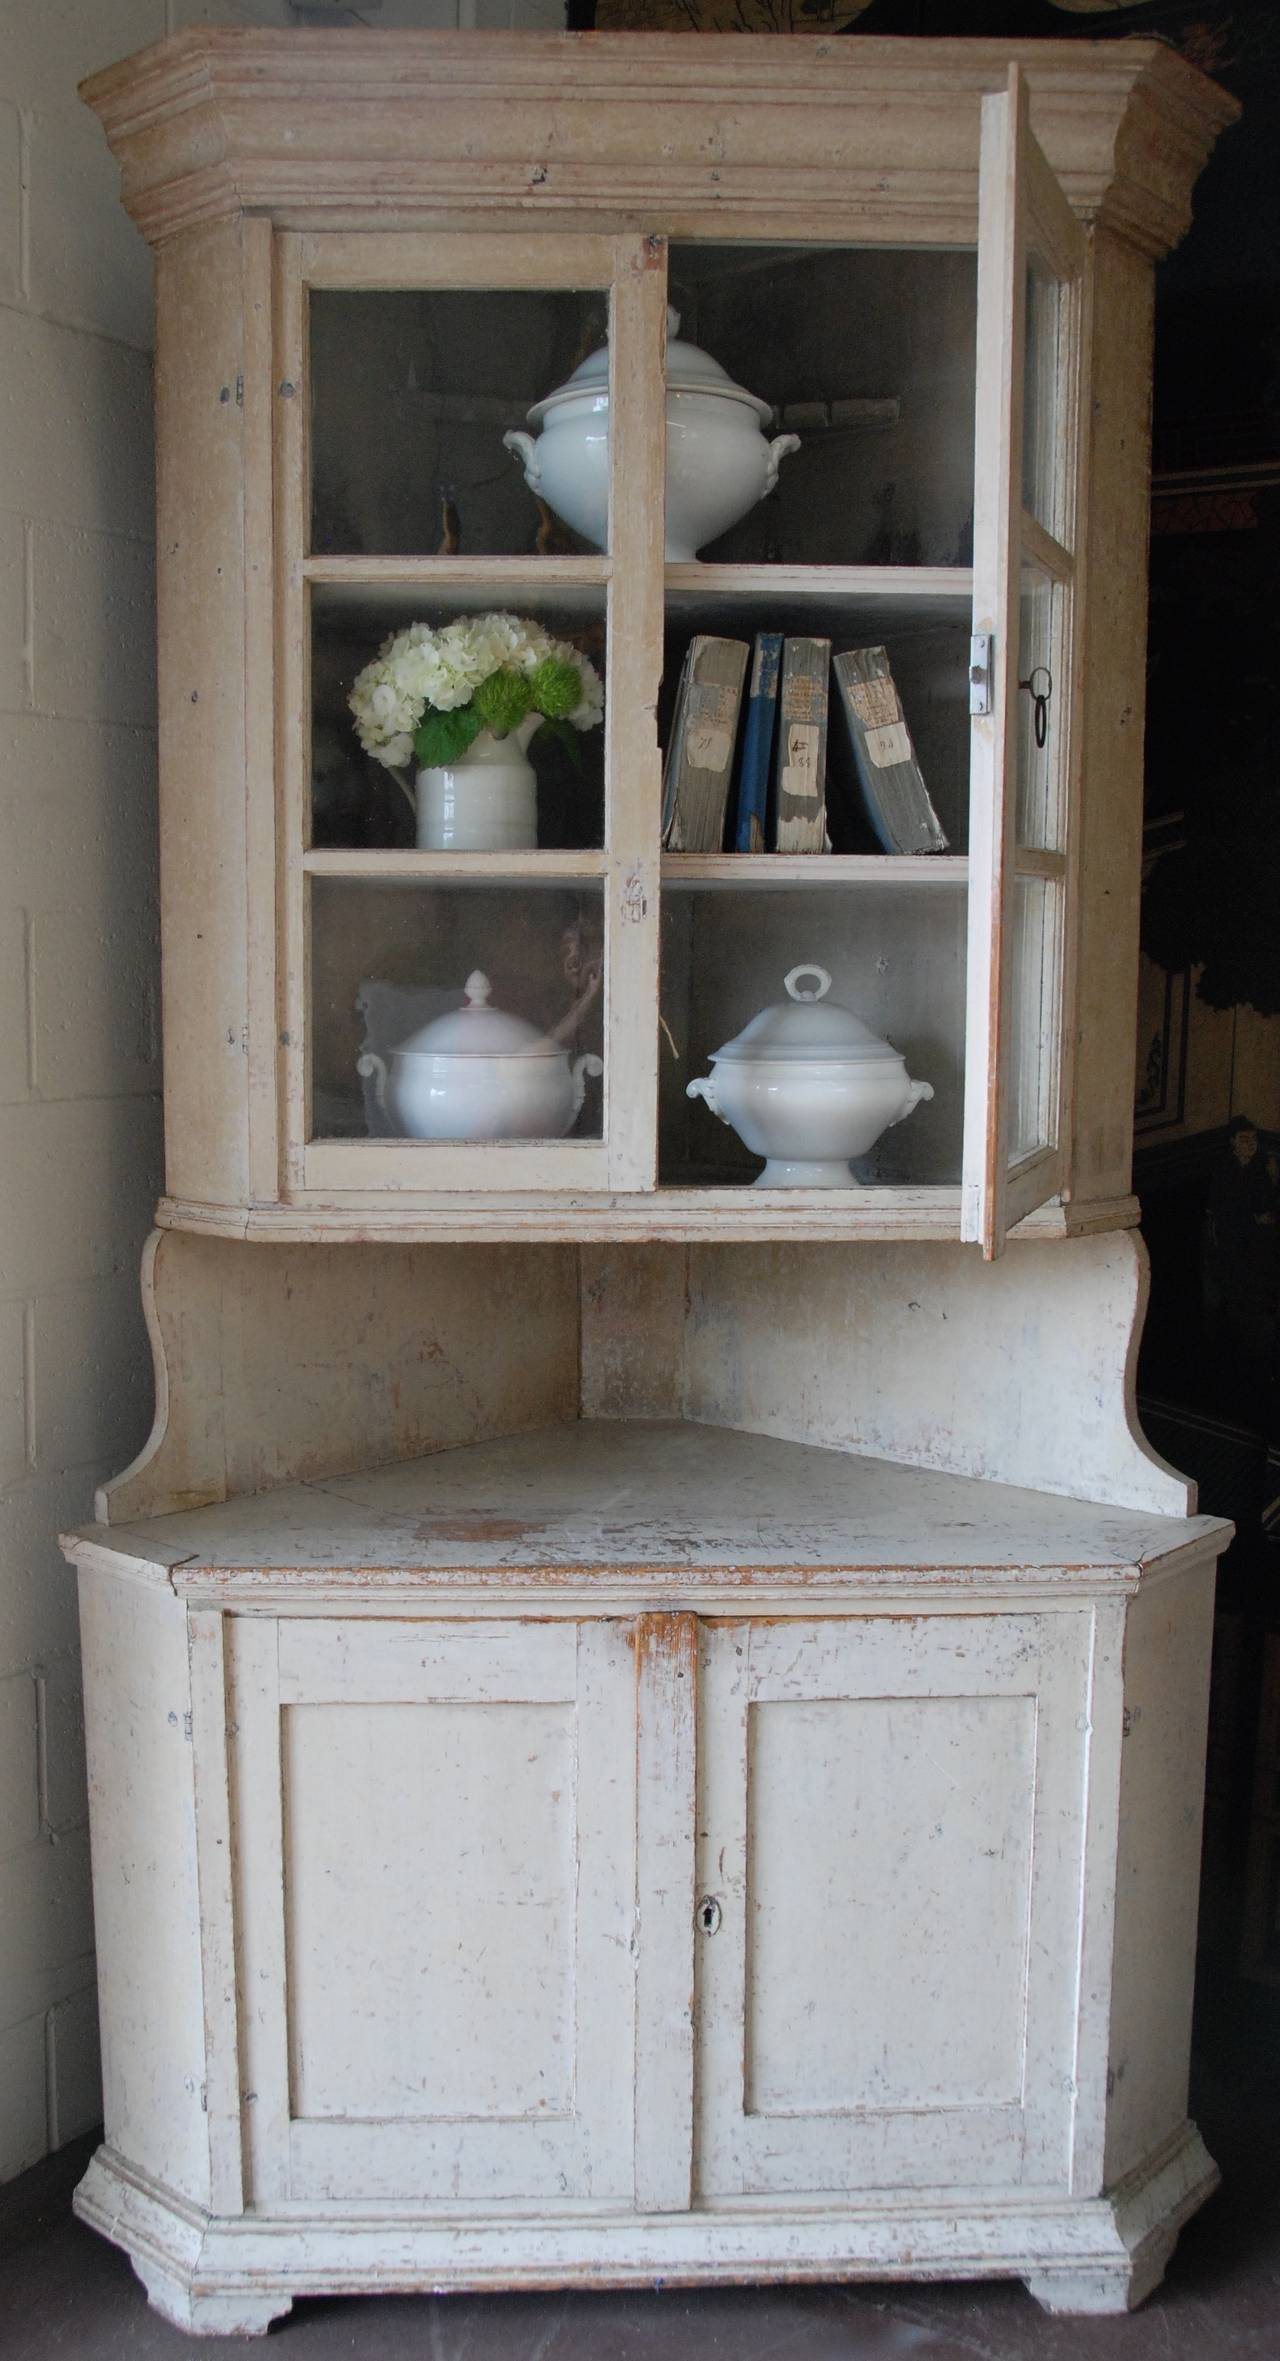 Lovely 18th century Swedish corner cabinet scrapped down to the original cream/white color. Original glass in paneled doors.